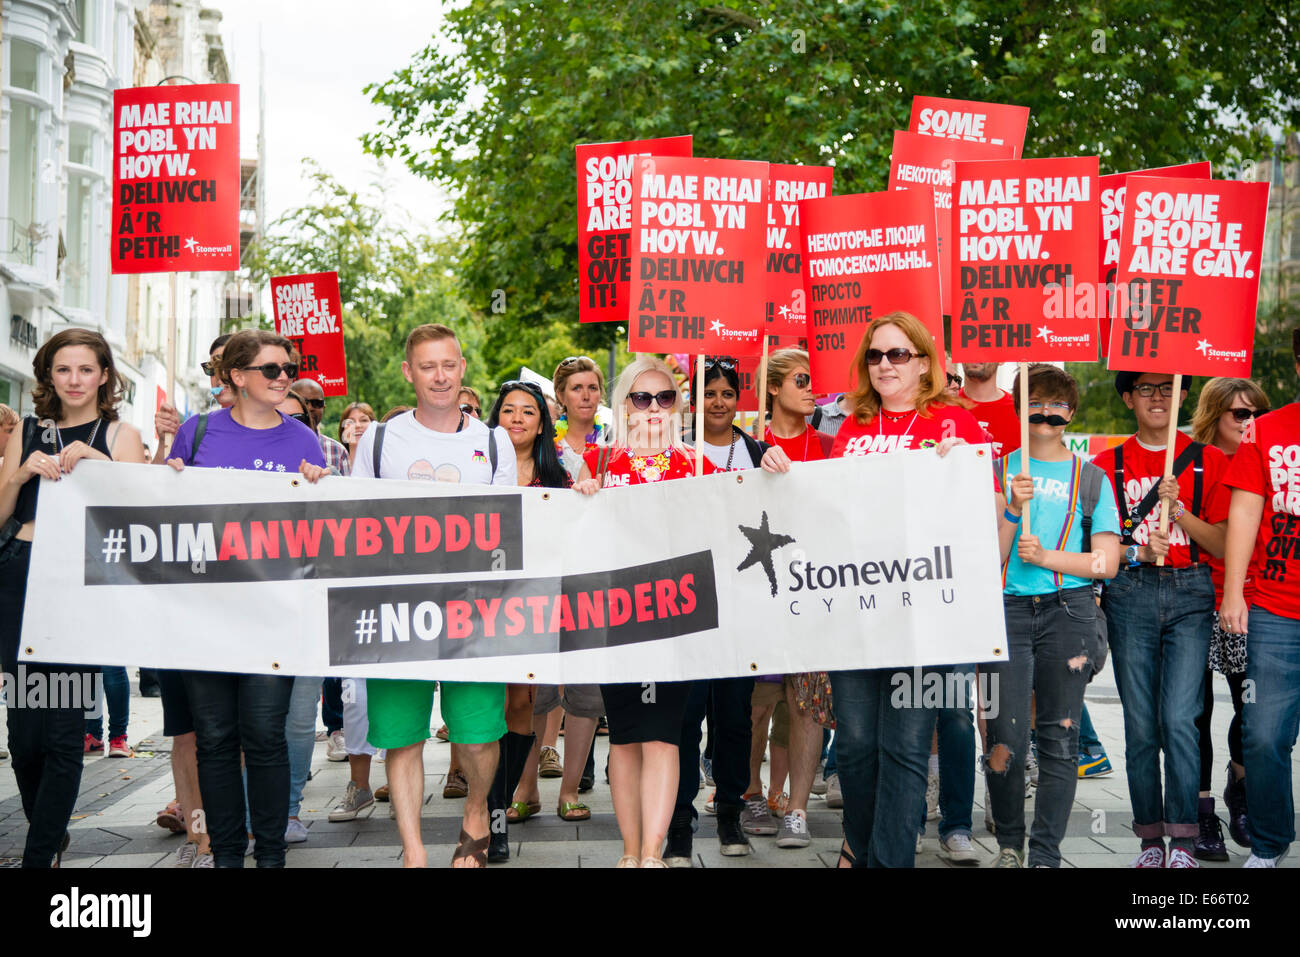 Cardiff, Wales, UK. 16th Aug, 2014. The 2014 Pride Cymru LGBT parade Mardi Gras in Cardiff Stonewall Credit:  Robert - Stock Image